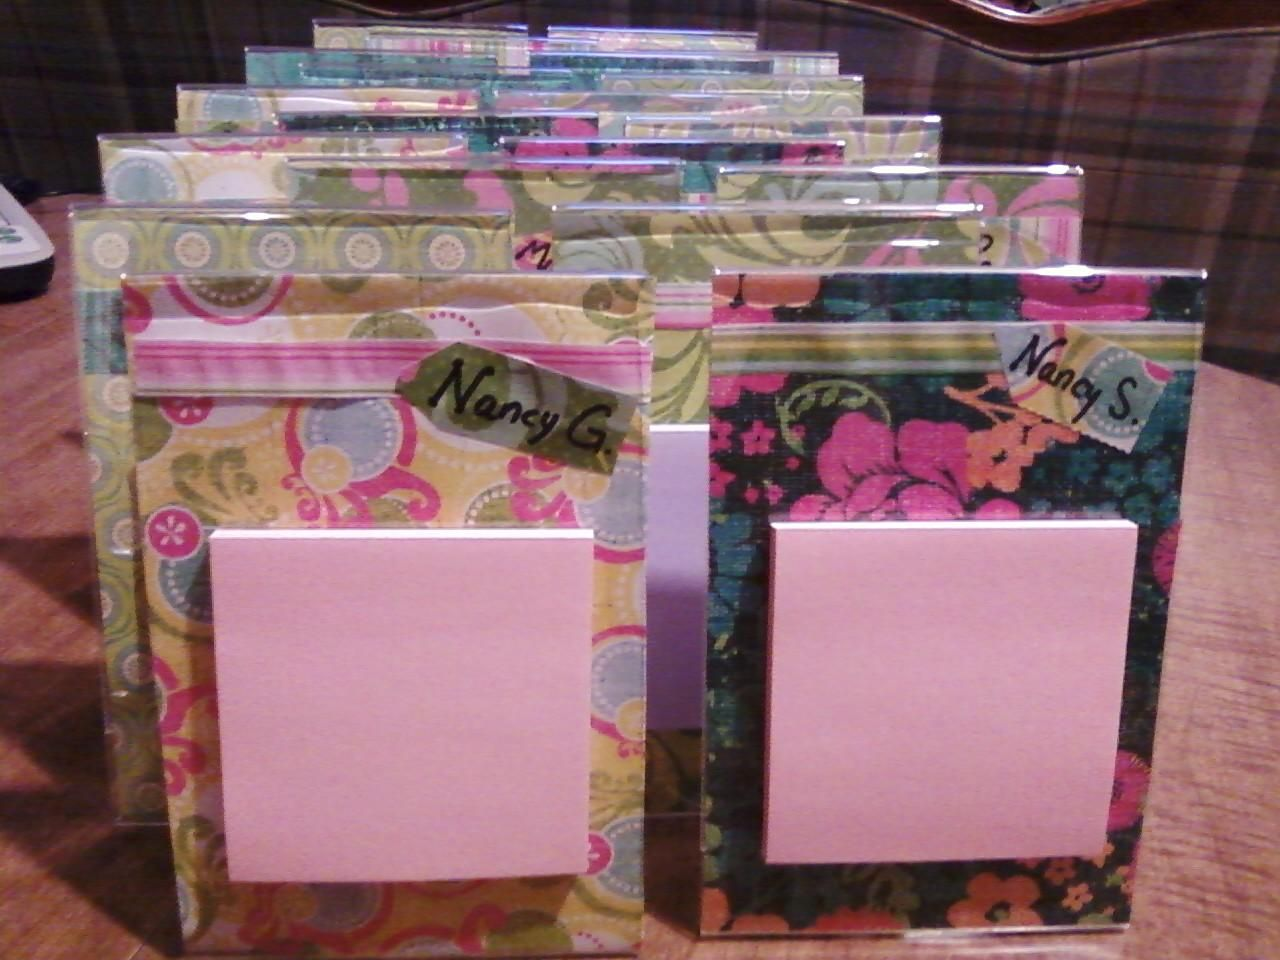 4x6 Acrylic Photo Frames Scrapbook Paper Inside With Co Workers